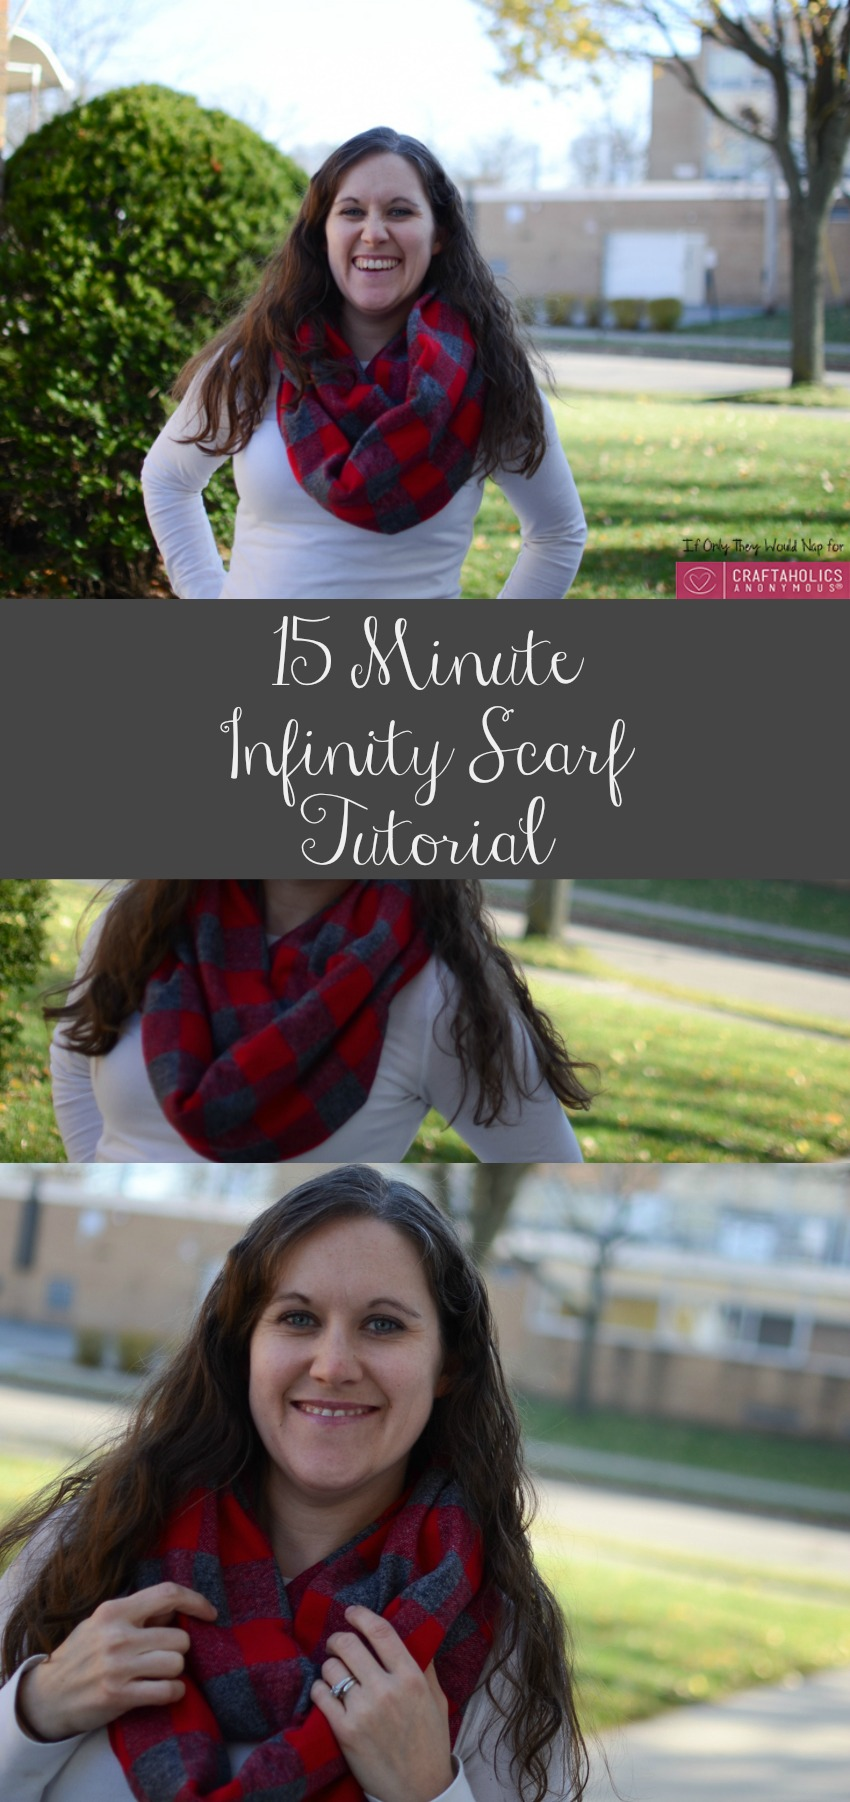 15 Minute Infinity Scarf Tutorial